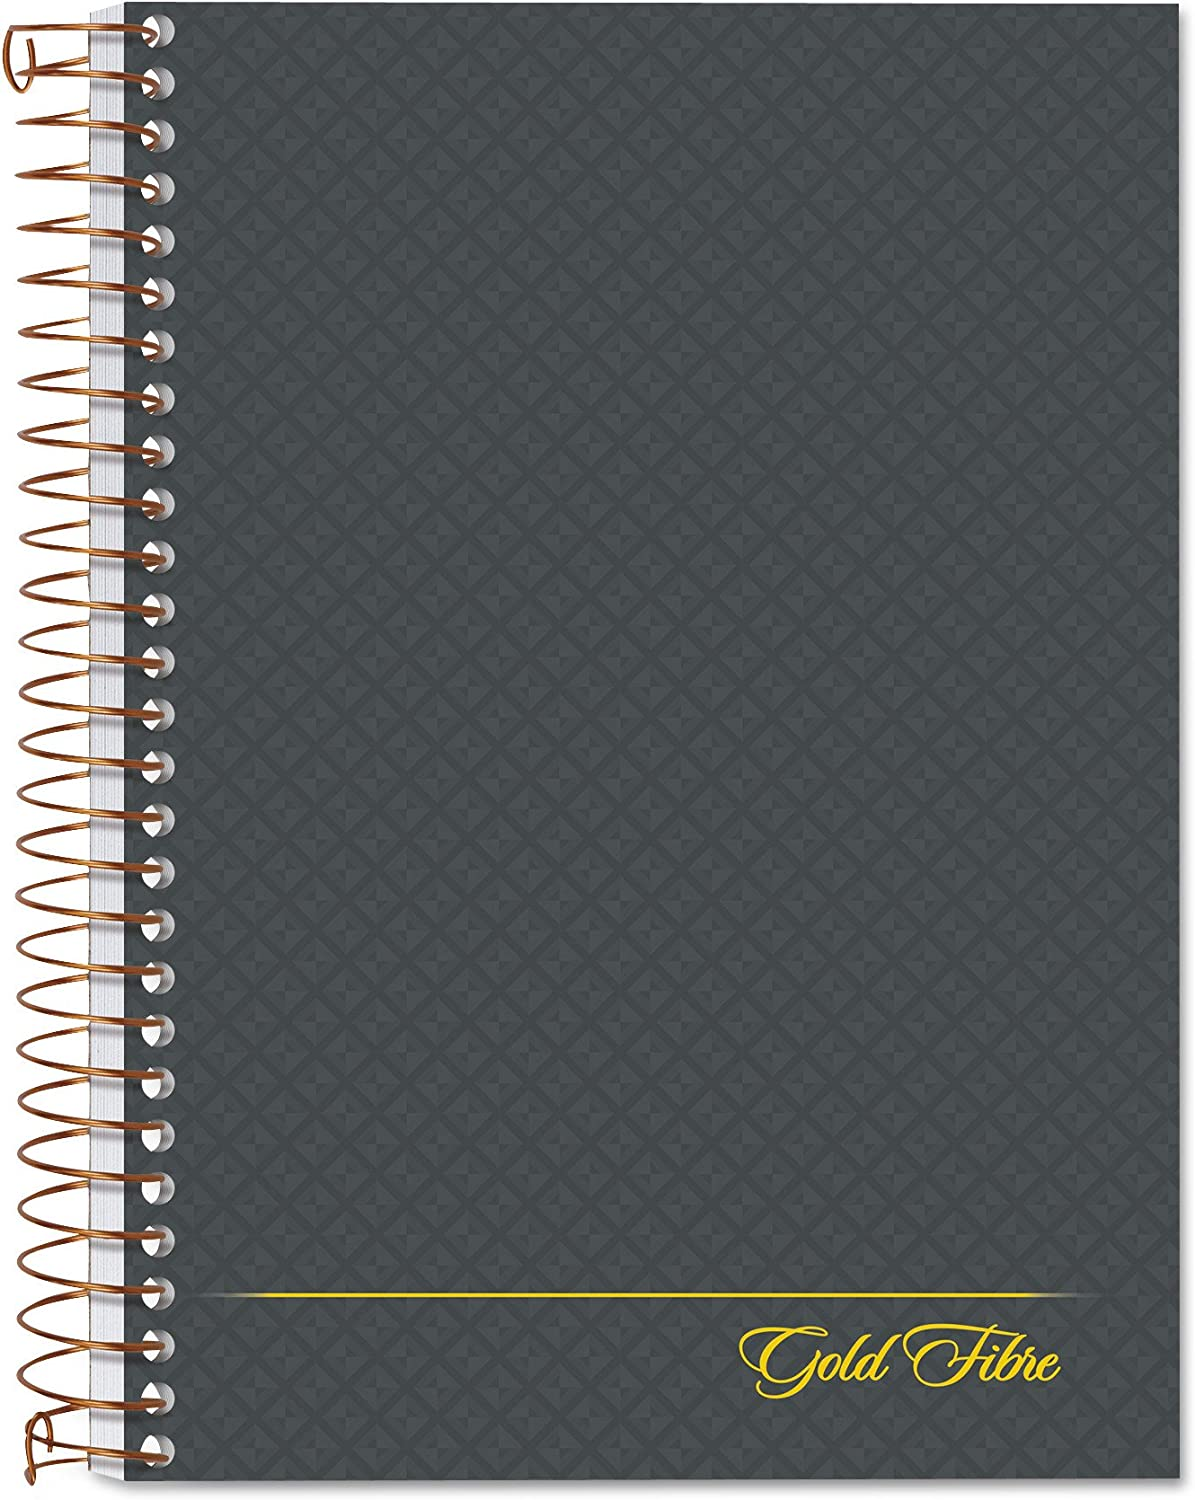 Ampad 20-803R, Gold Fibre Notebook, Medium Ruling, 7X5 Inches, Grey Cover, 100 Sheets